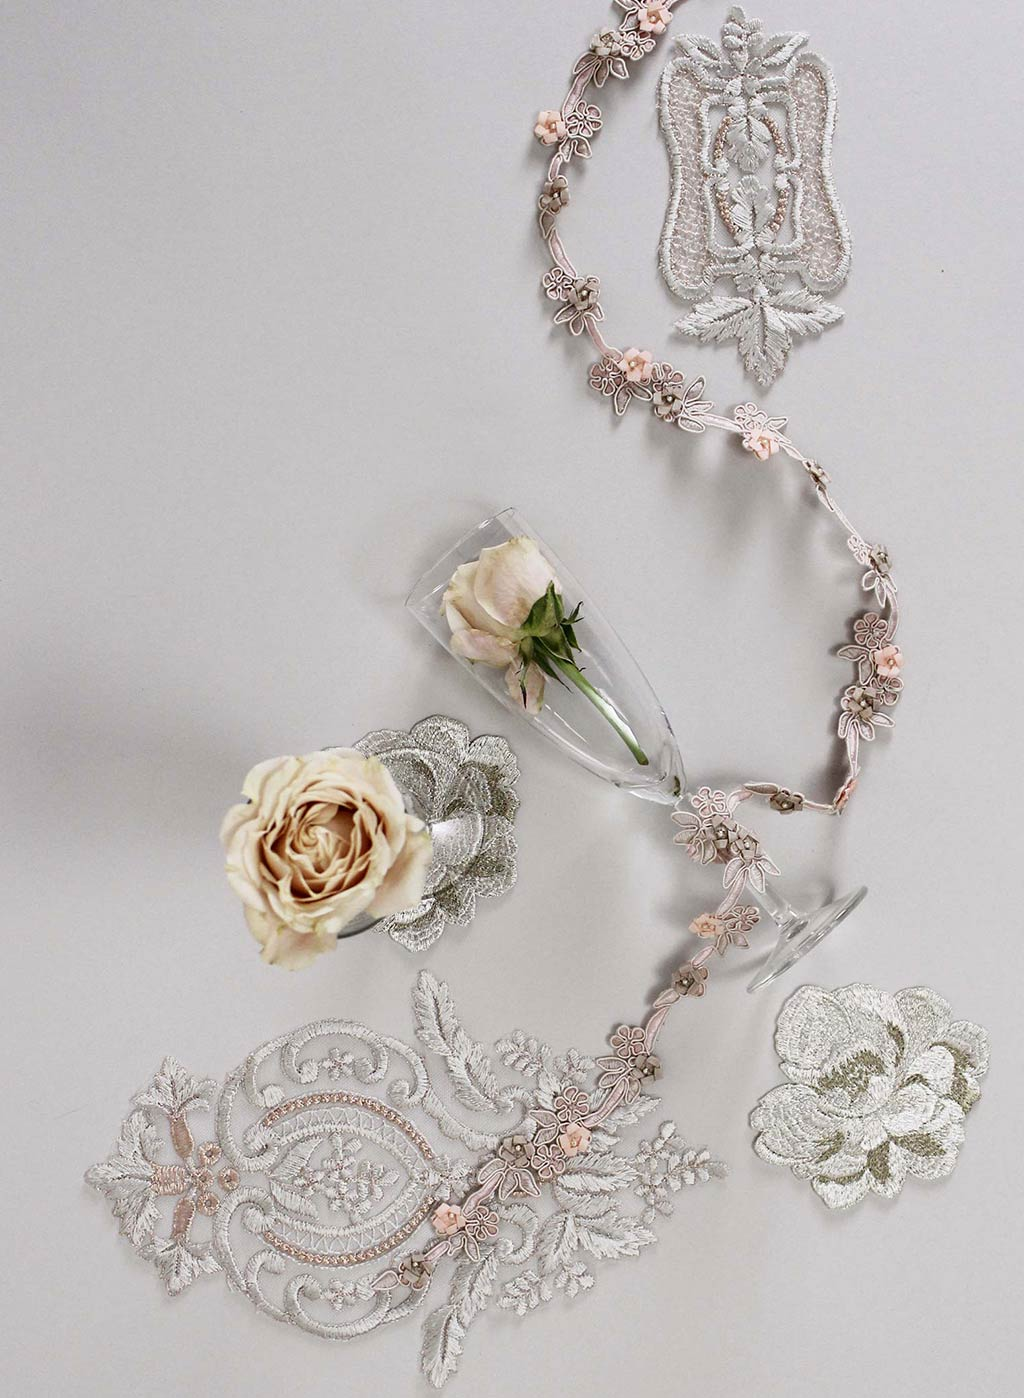 Wedding Glasses with Floral Decorations